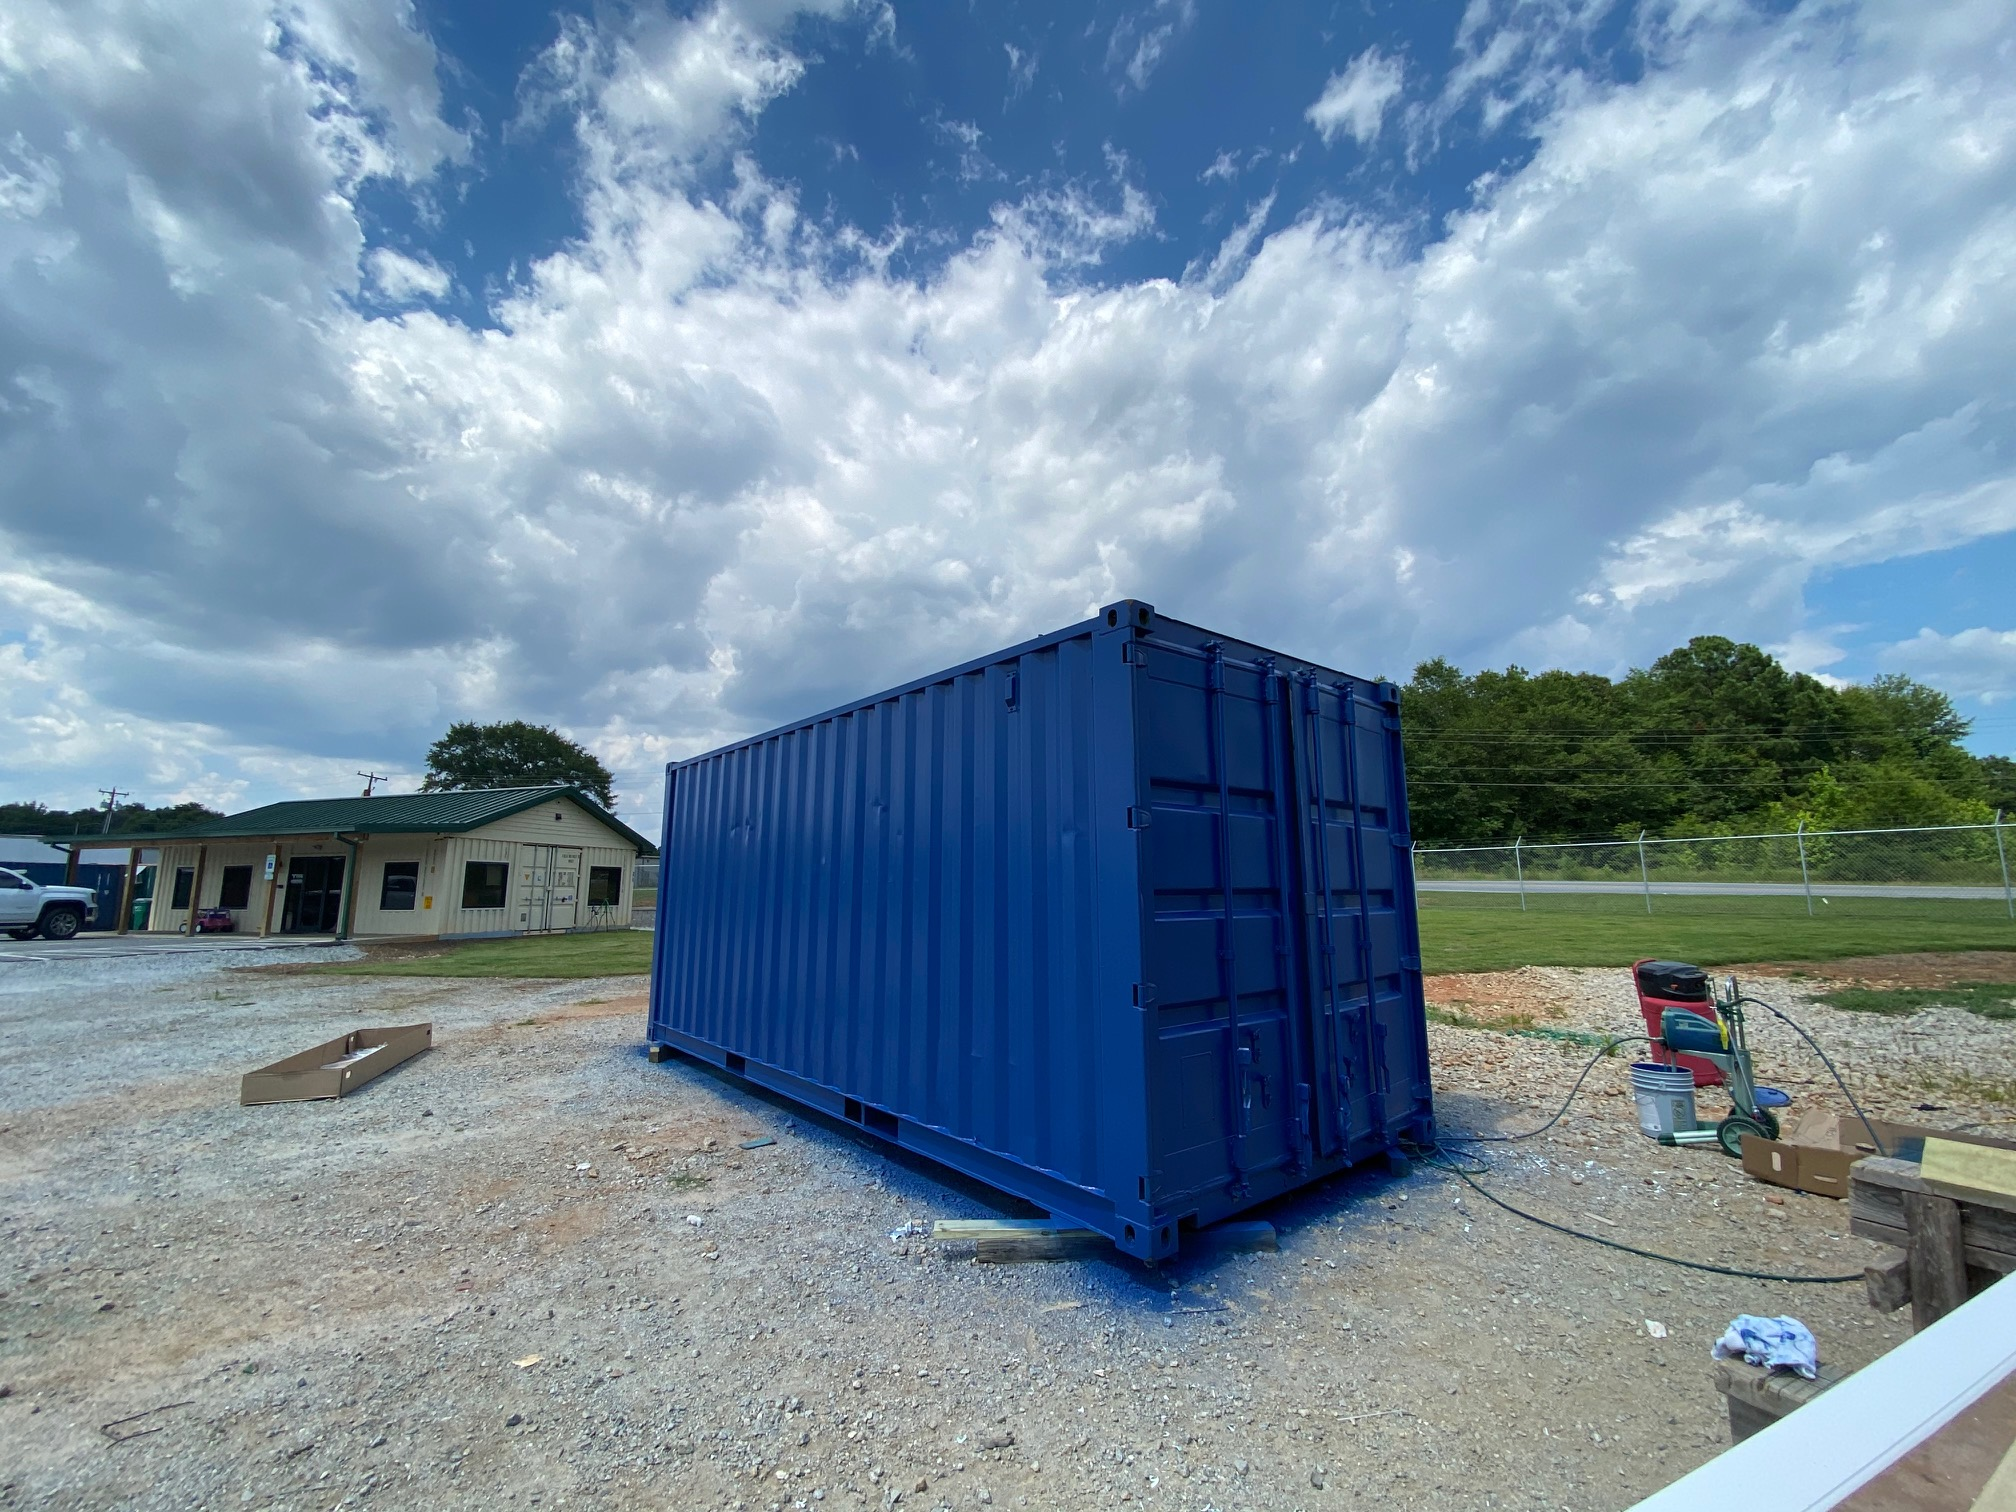 Blue storage container being painted